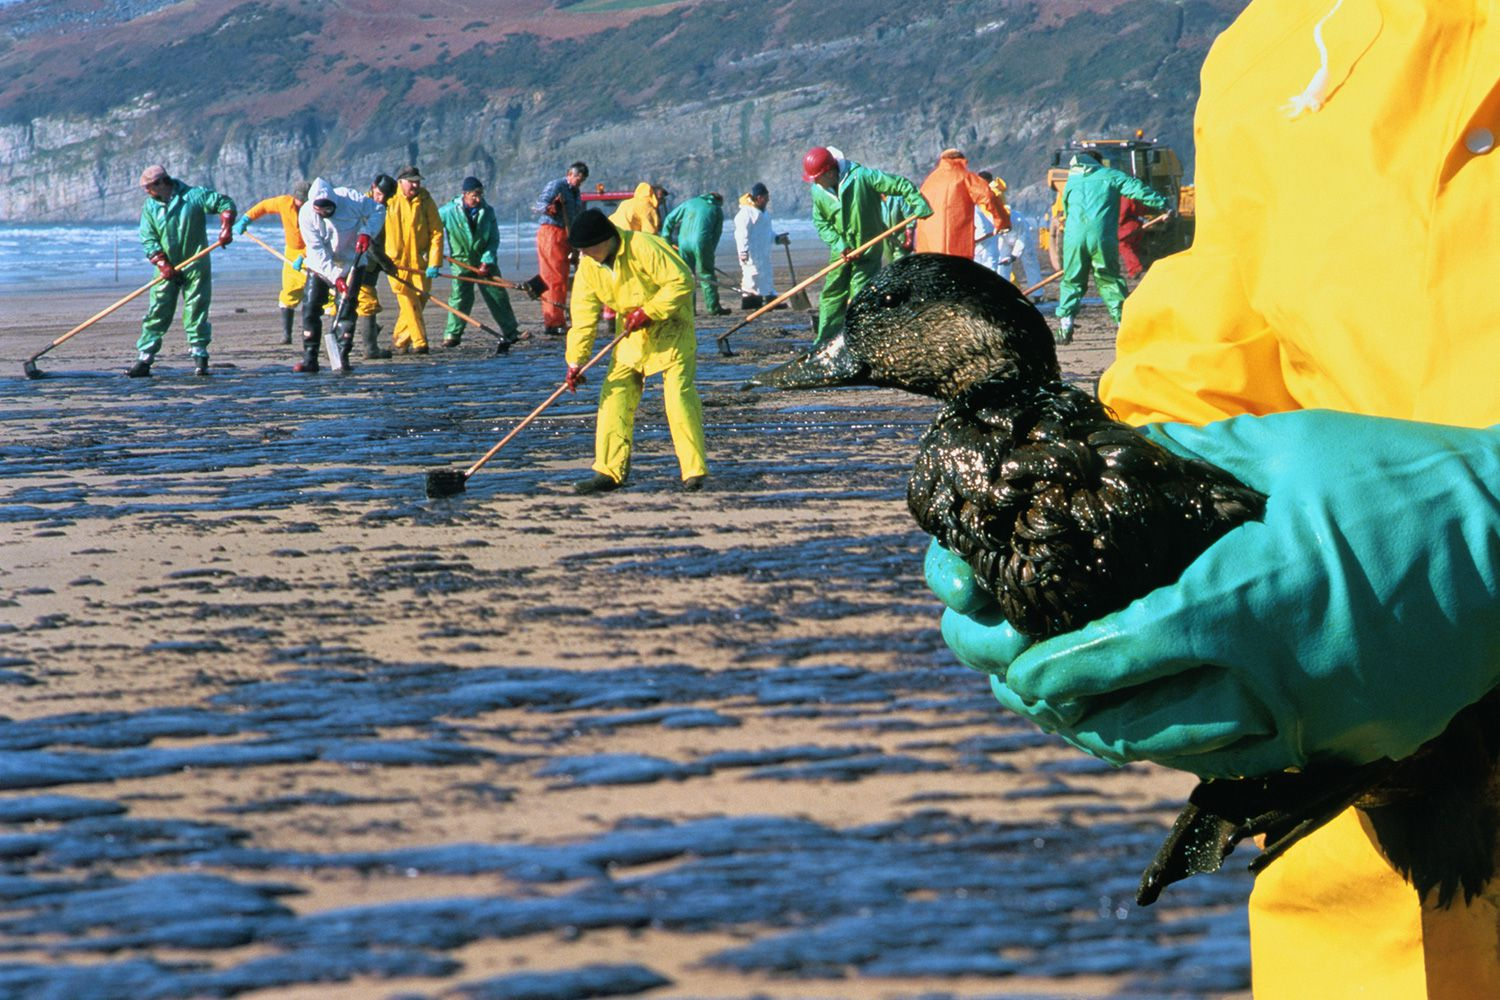 oil spills damage the environment